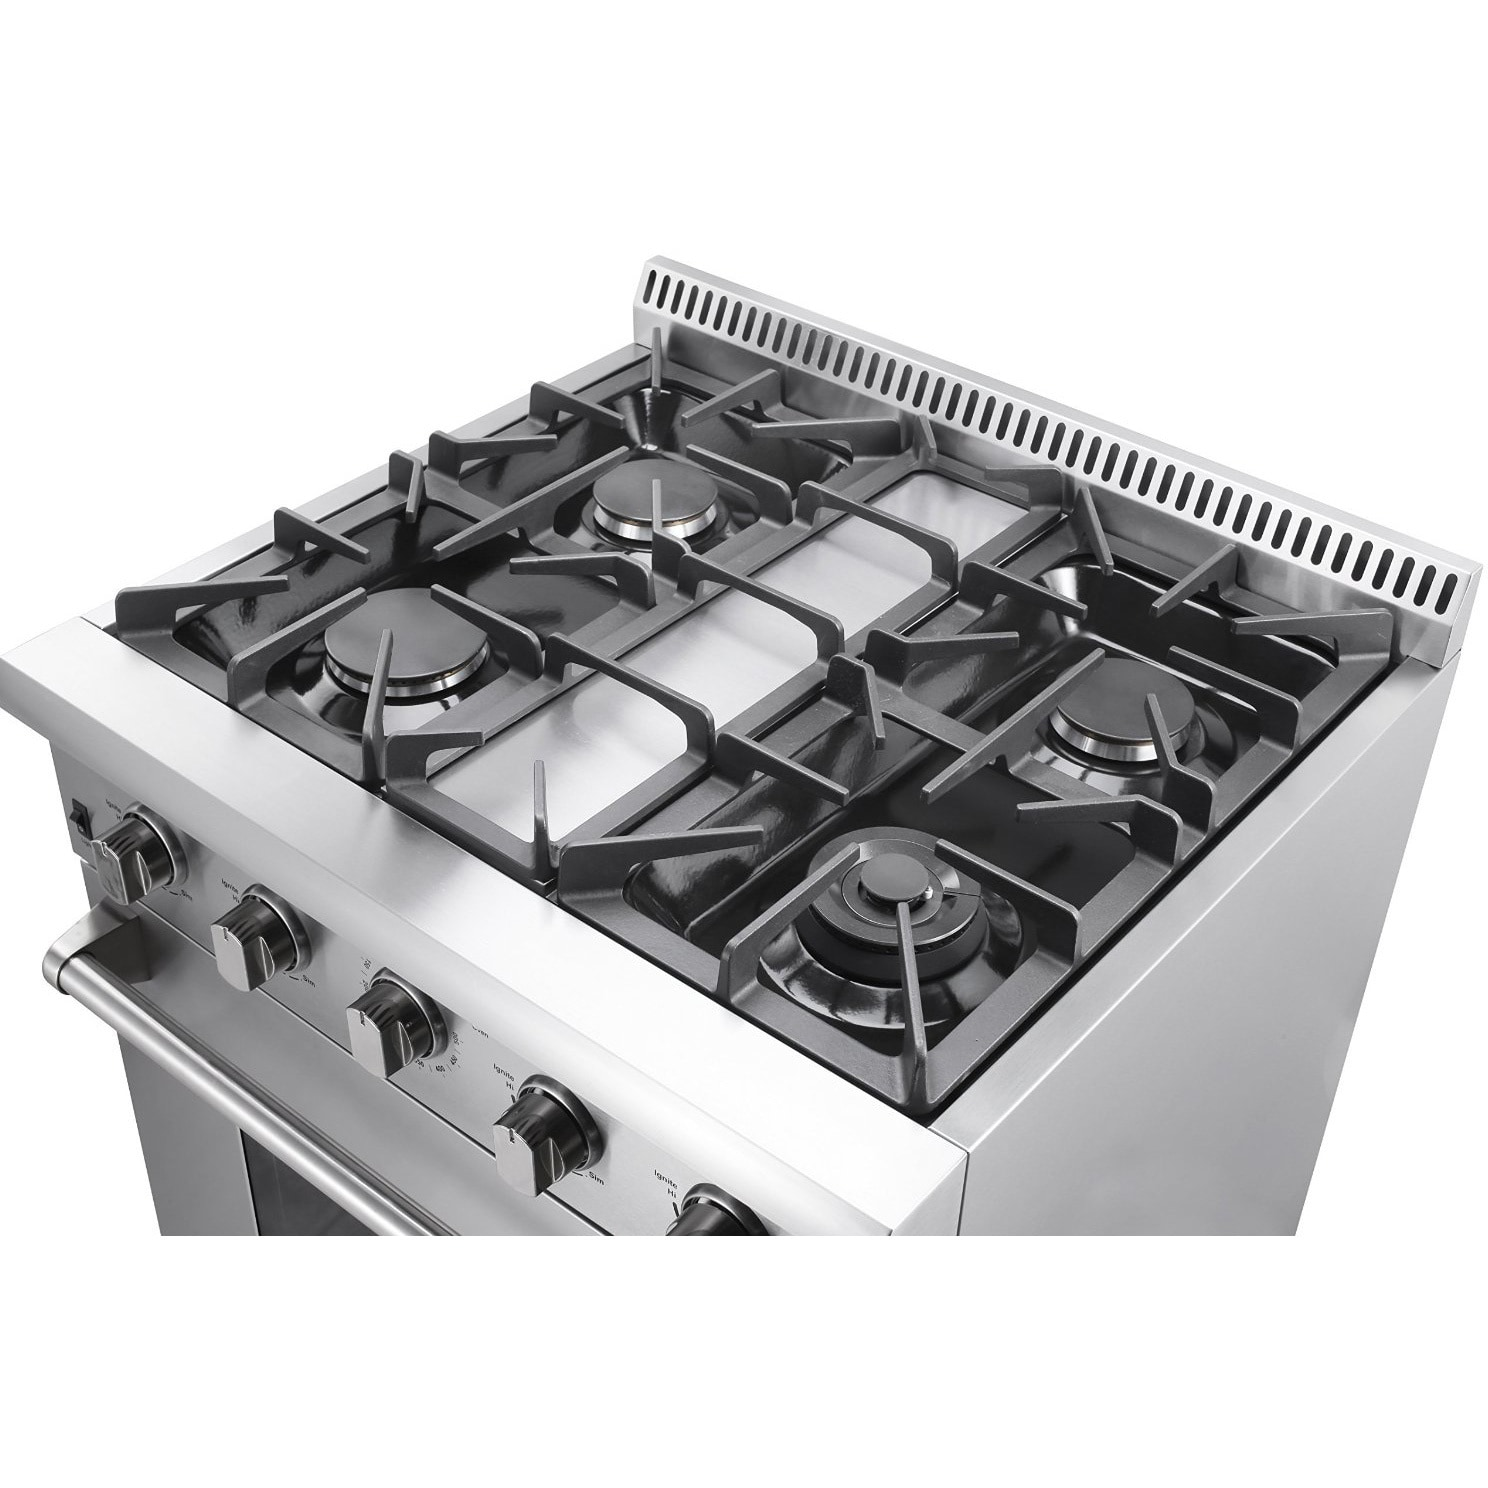 Exceptionnel Shop Thor Kitchen 30 Inch Stainless Steel Professional Gas Range With 4  Burners   Free Shipping Today   Overstock.com   10401416